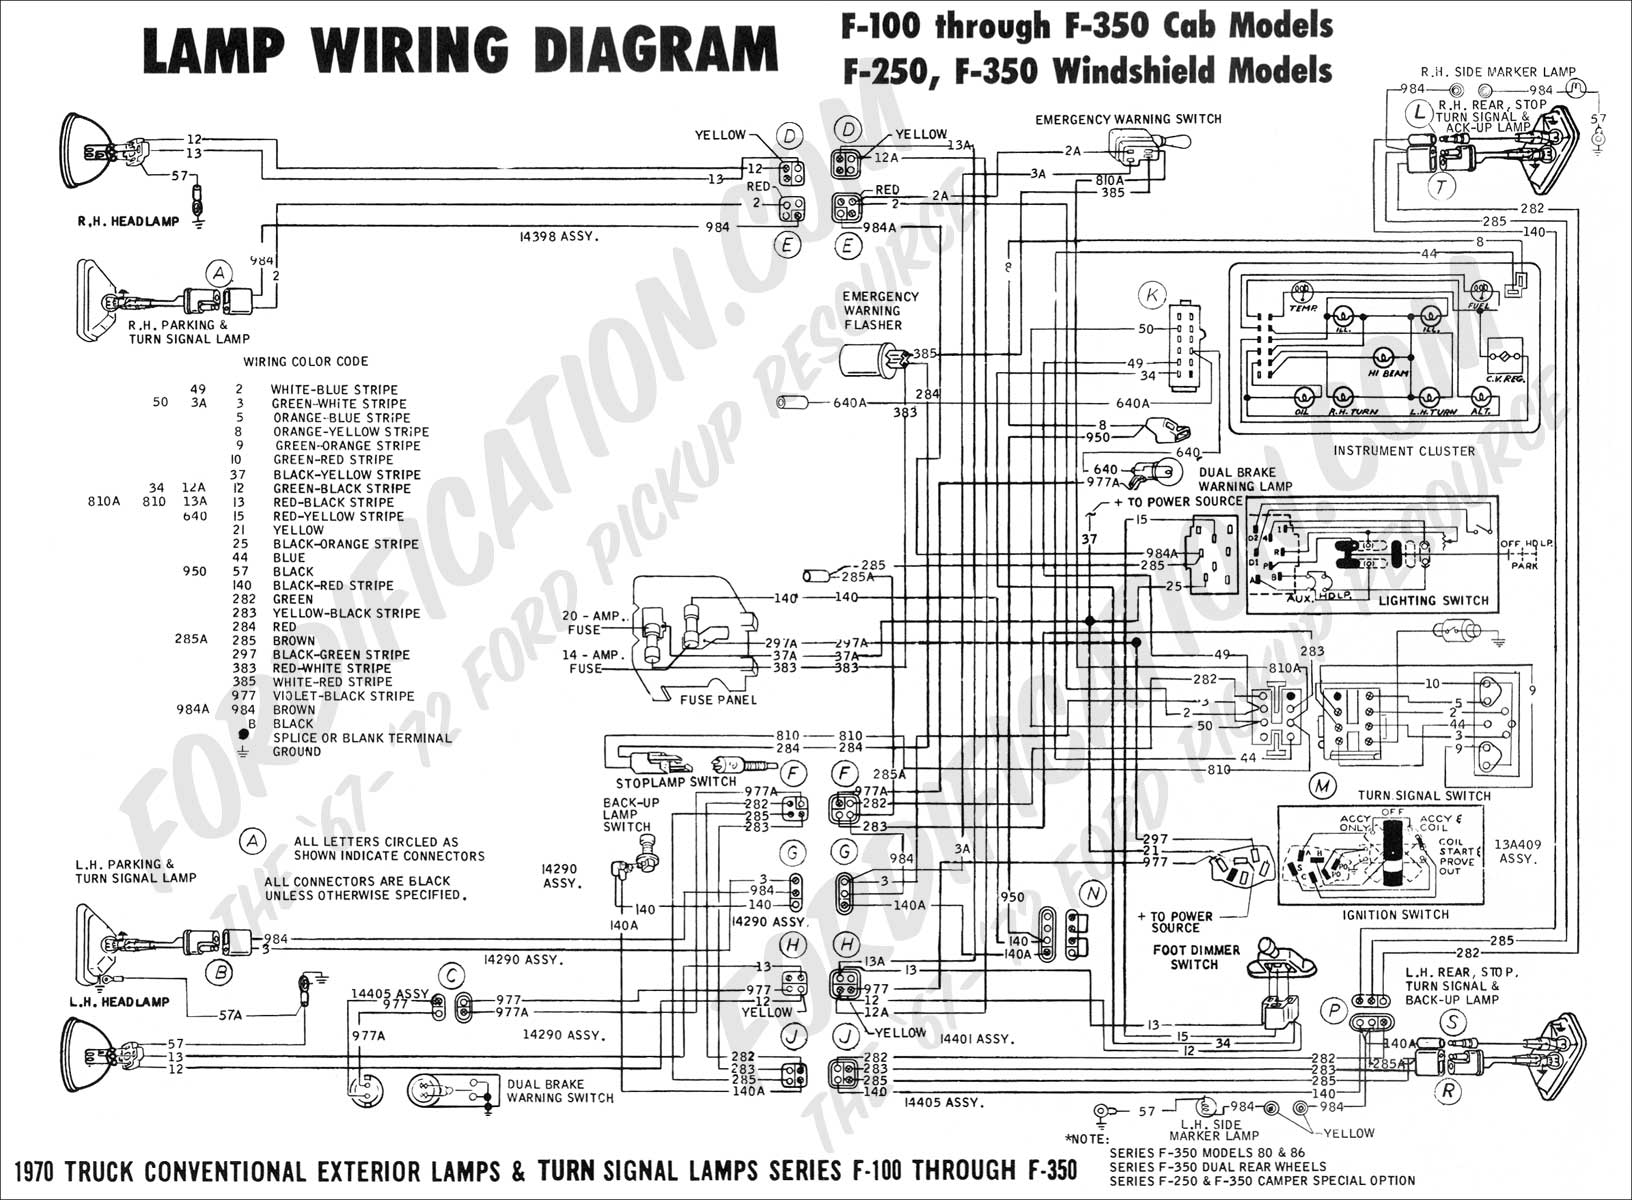 1978 86 Jeep Cj Replacement Fuel Tank 21 Gallon likewise 1fmku Possible Install 302 93 96 F150 92 together with Corvette Crossfire Engine likewise Diagram view likewise Wiring Diagrams 73 87 Chevy Trucks. on 85 ford bronco wiring diagram